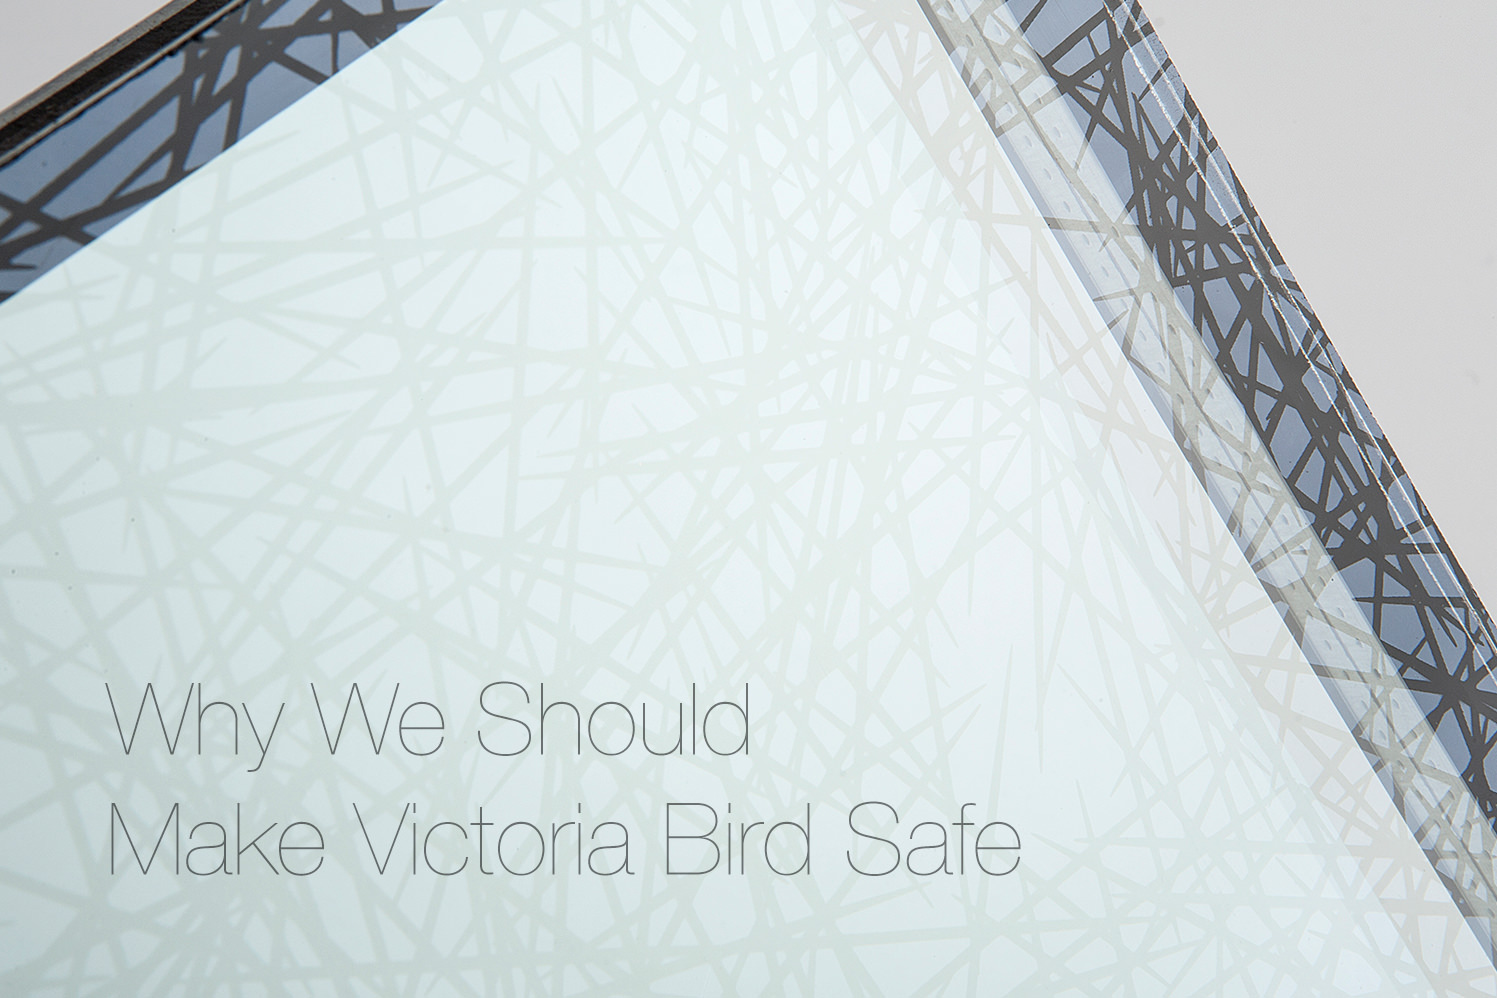 why-we-shoudl-make-victoria-bird-safe